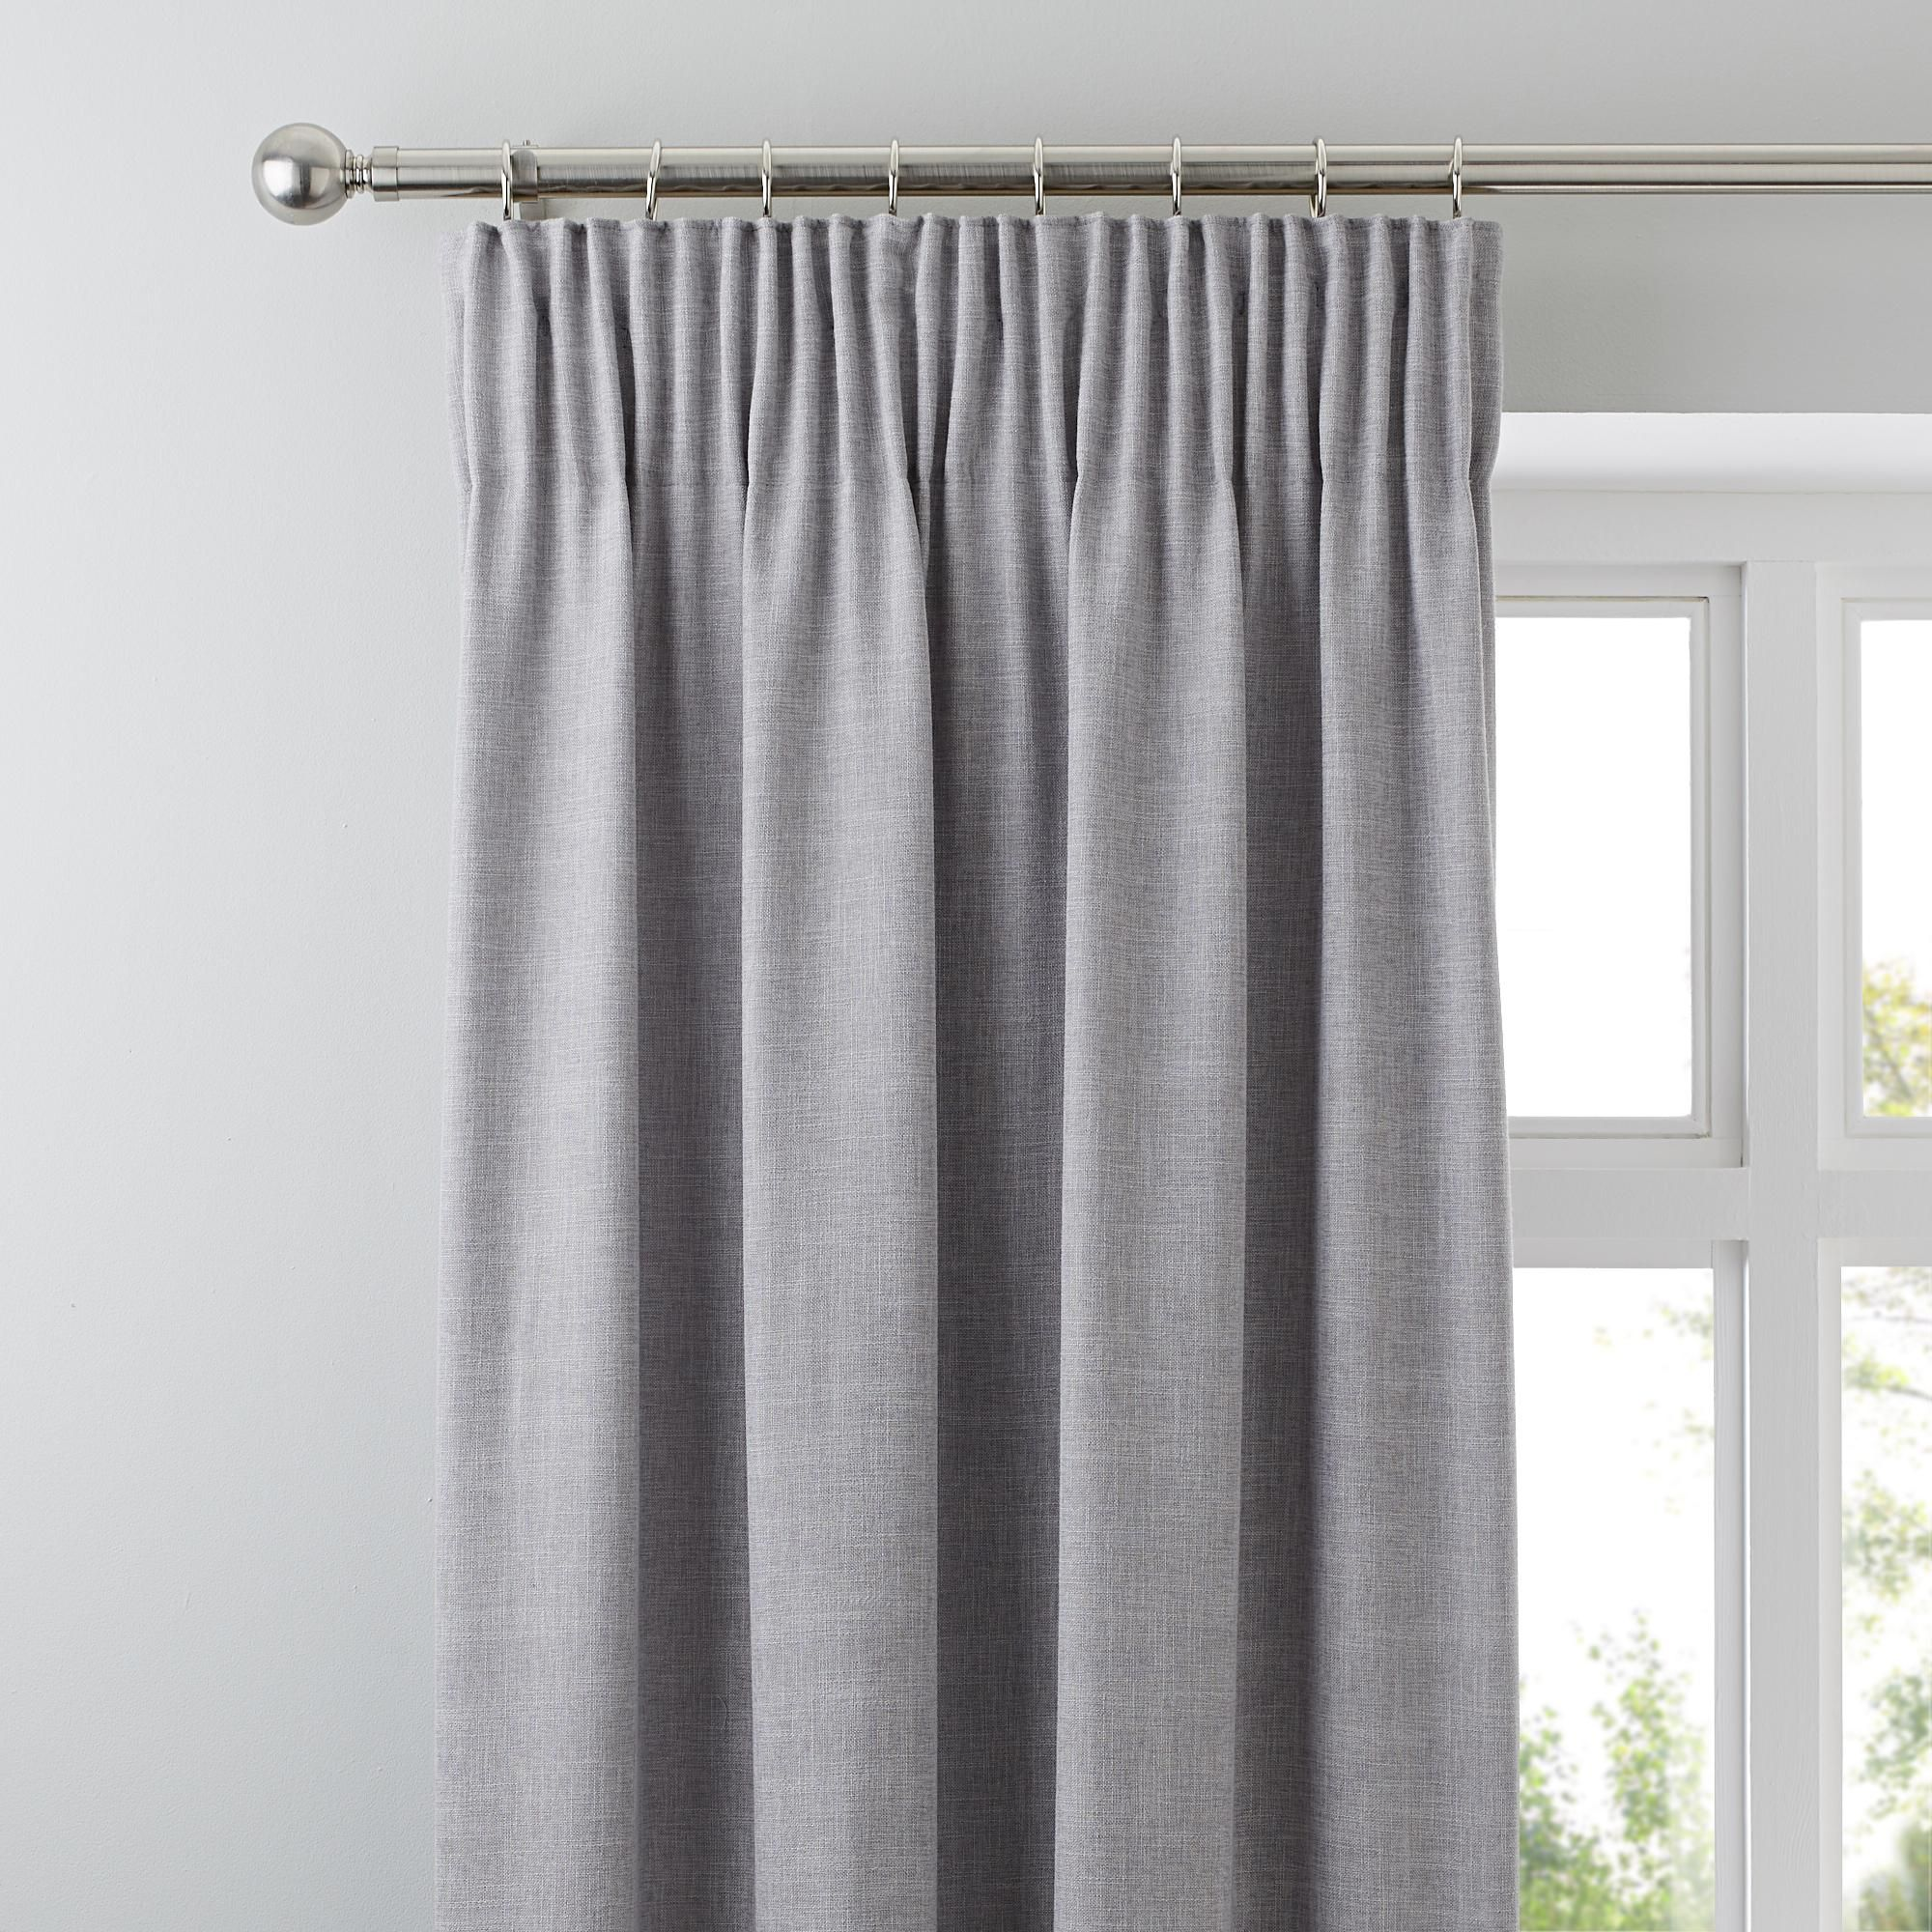 Pencil Pleat Curtains Storiestrending Com Grey Pencil Pleat Curtains Pleated Curtains Pencil Pleat